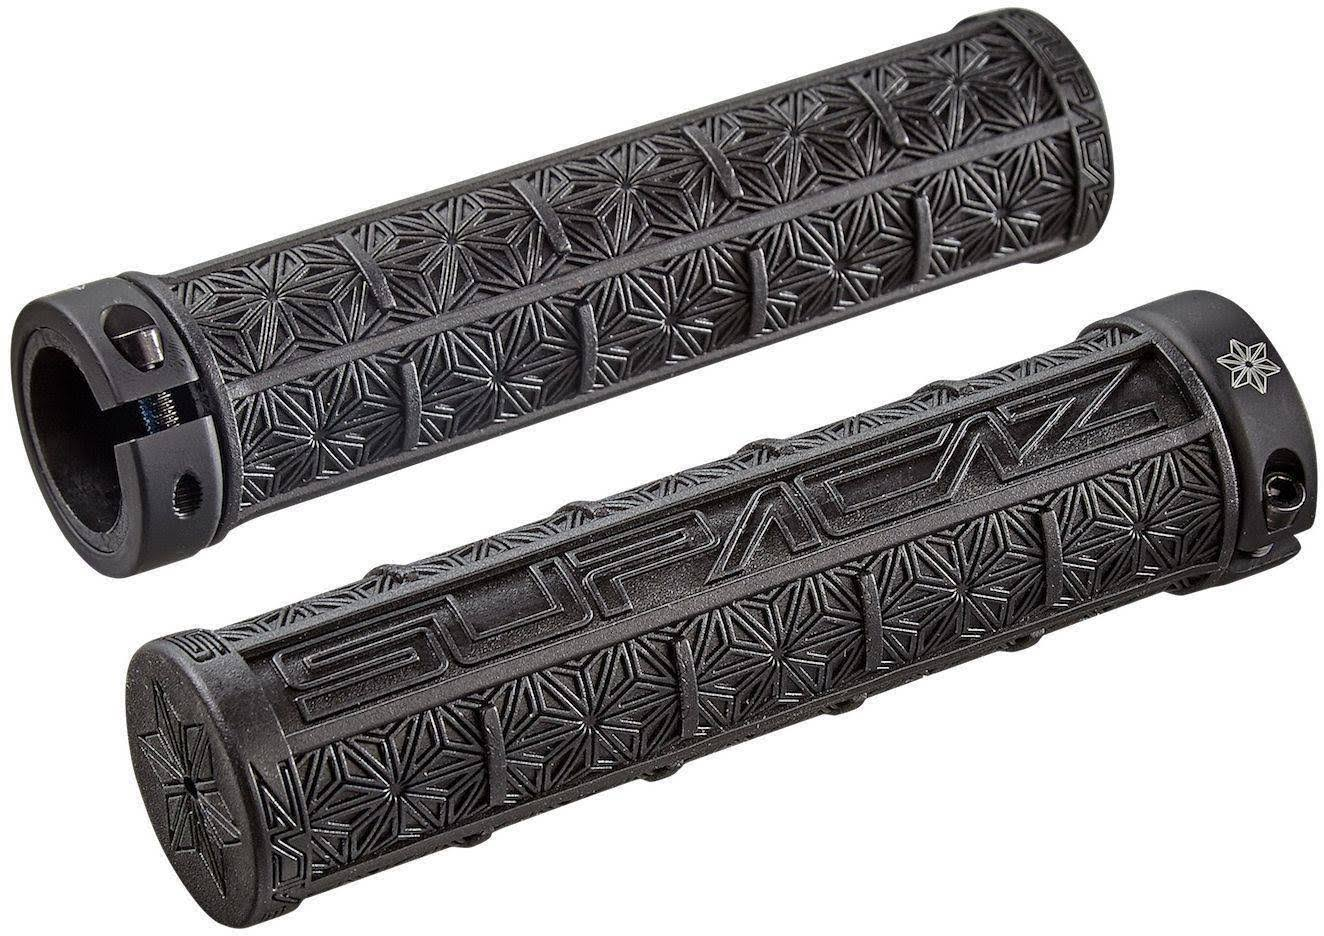 Supacaz Grizips Lock-On Grips - Black, 32mm